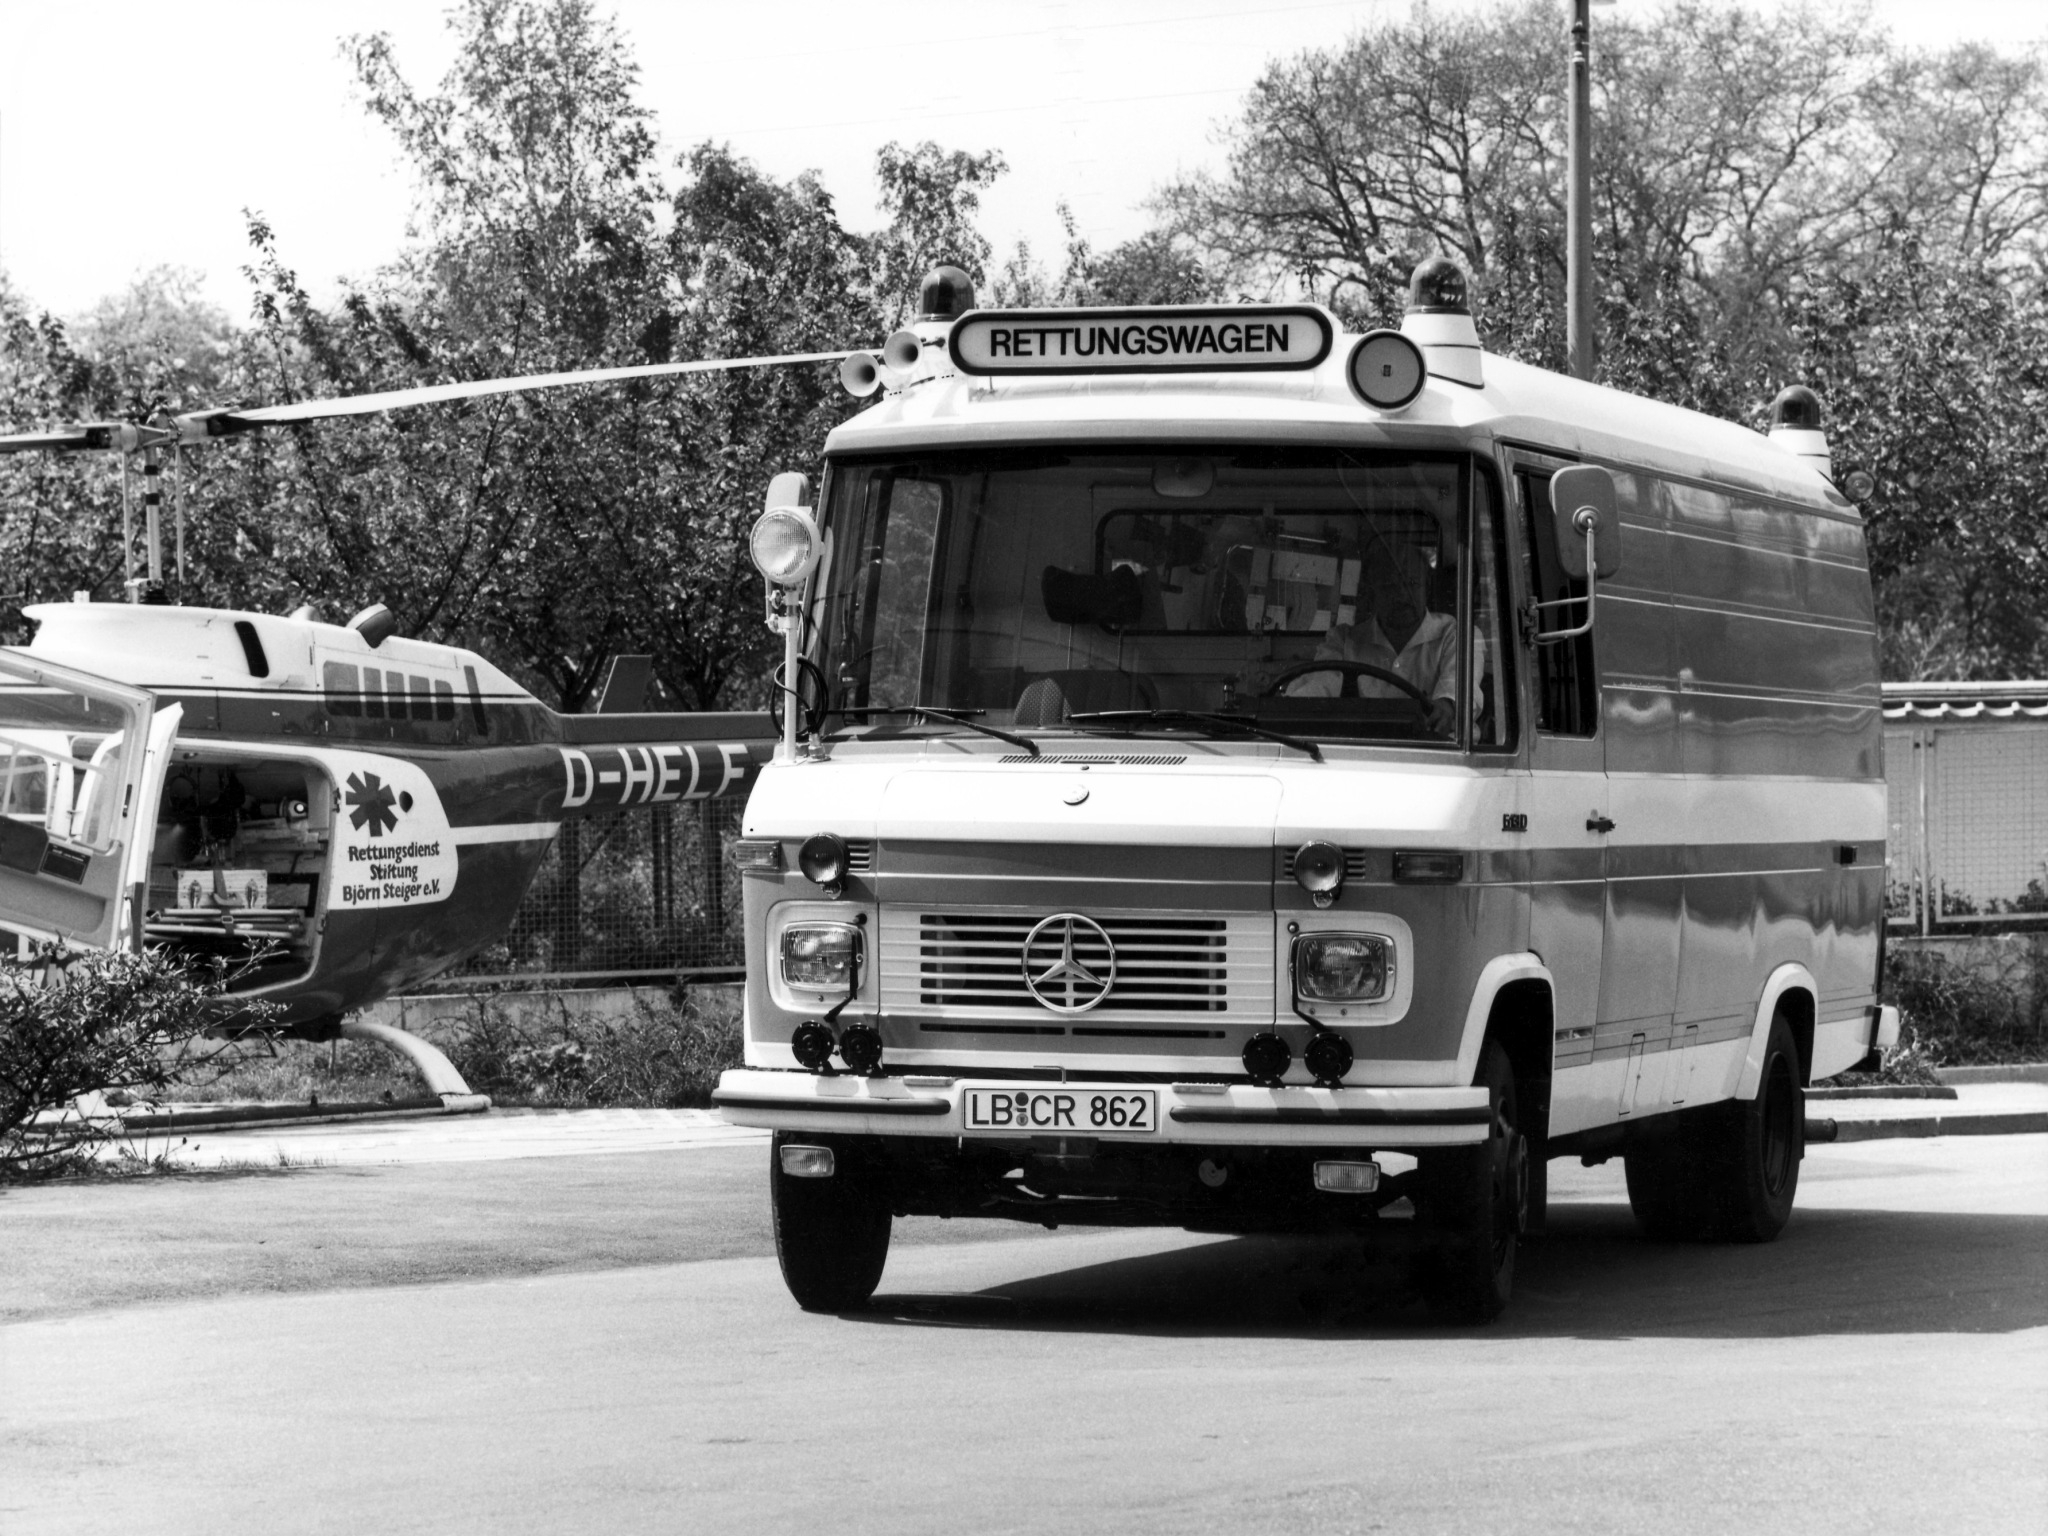 1977 mercedes benz l613d rettungswagen 310 ambulance for Mercedes benz emergency